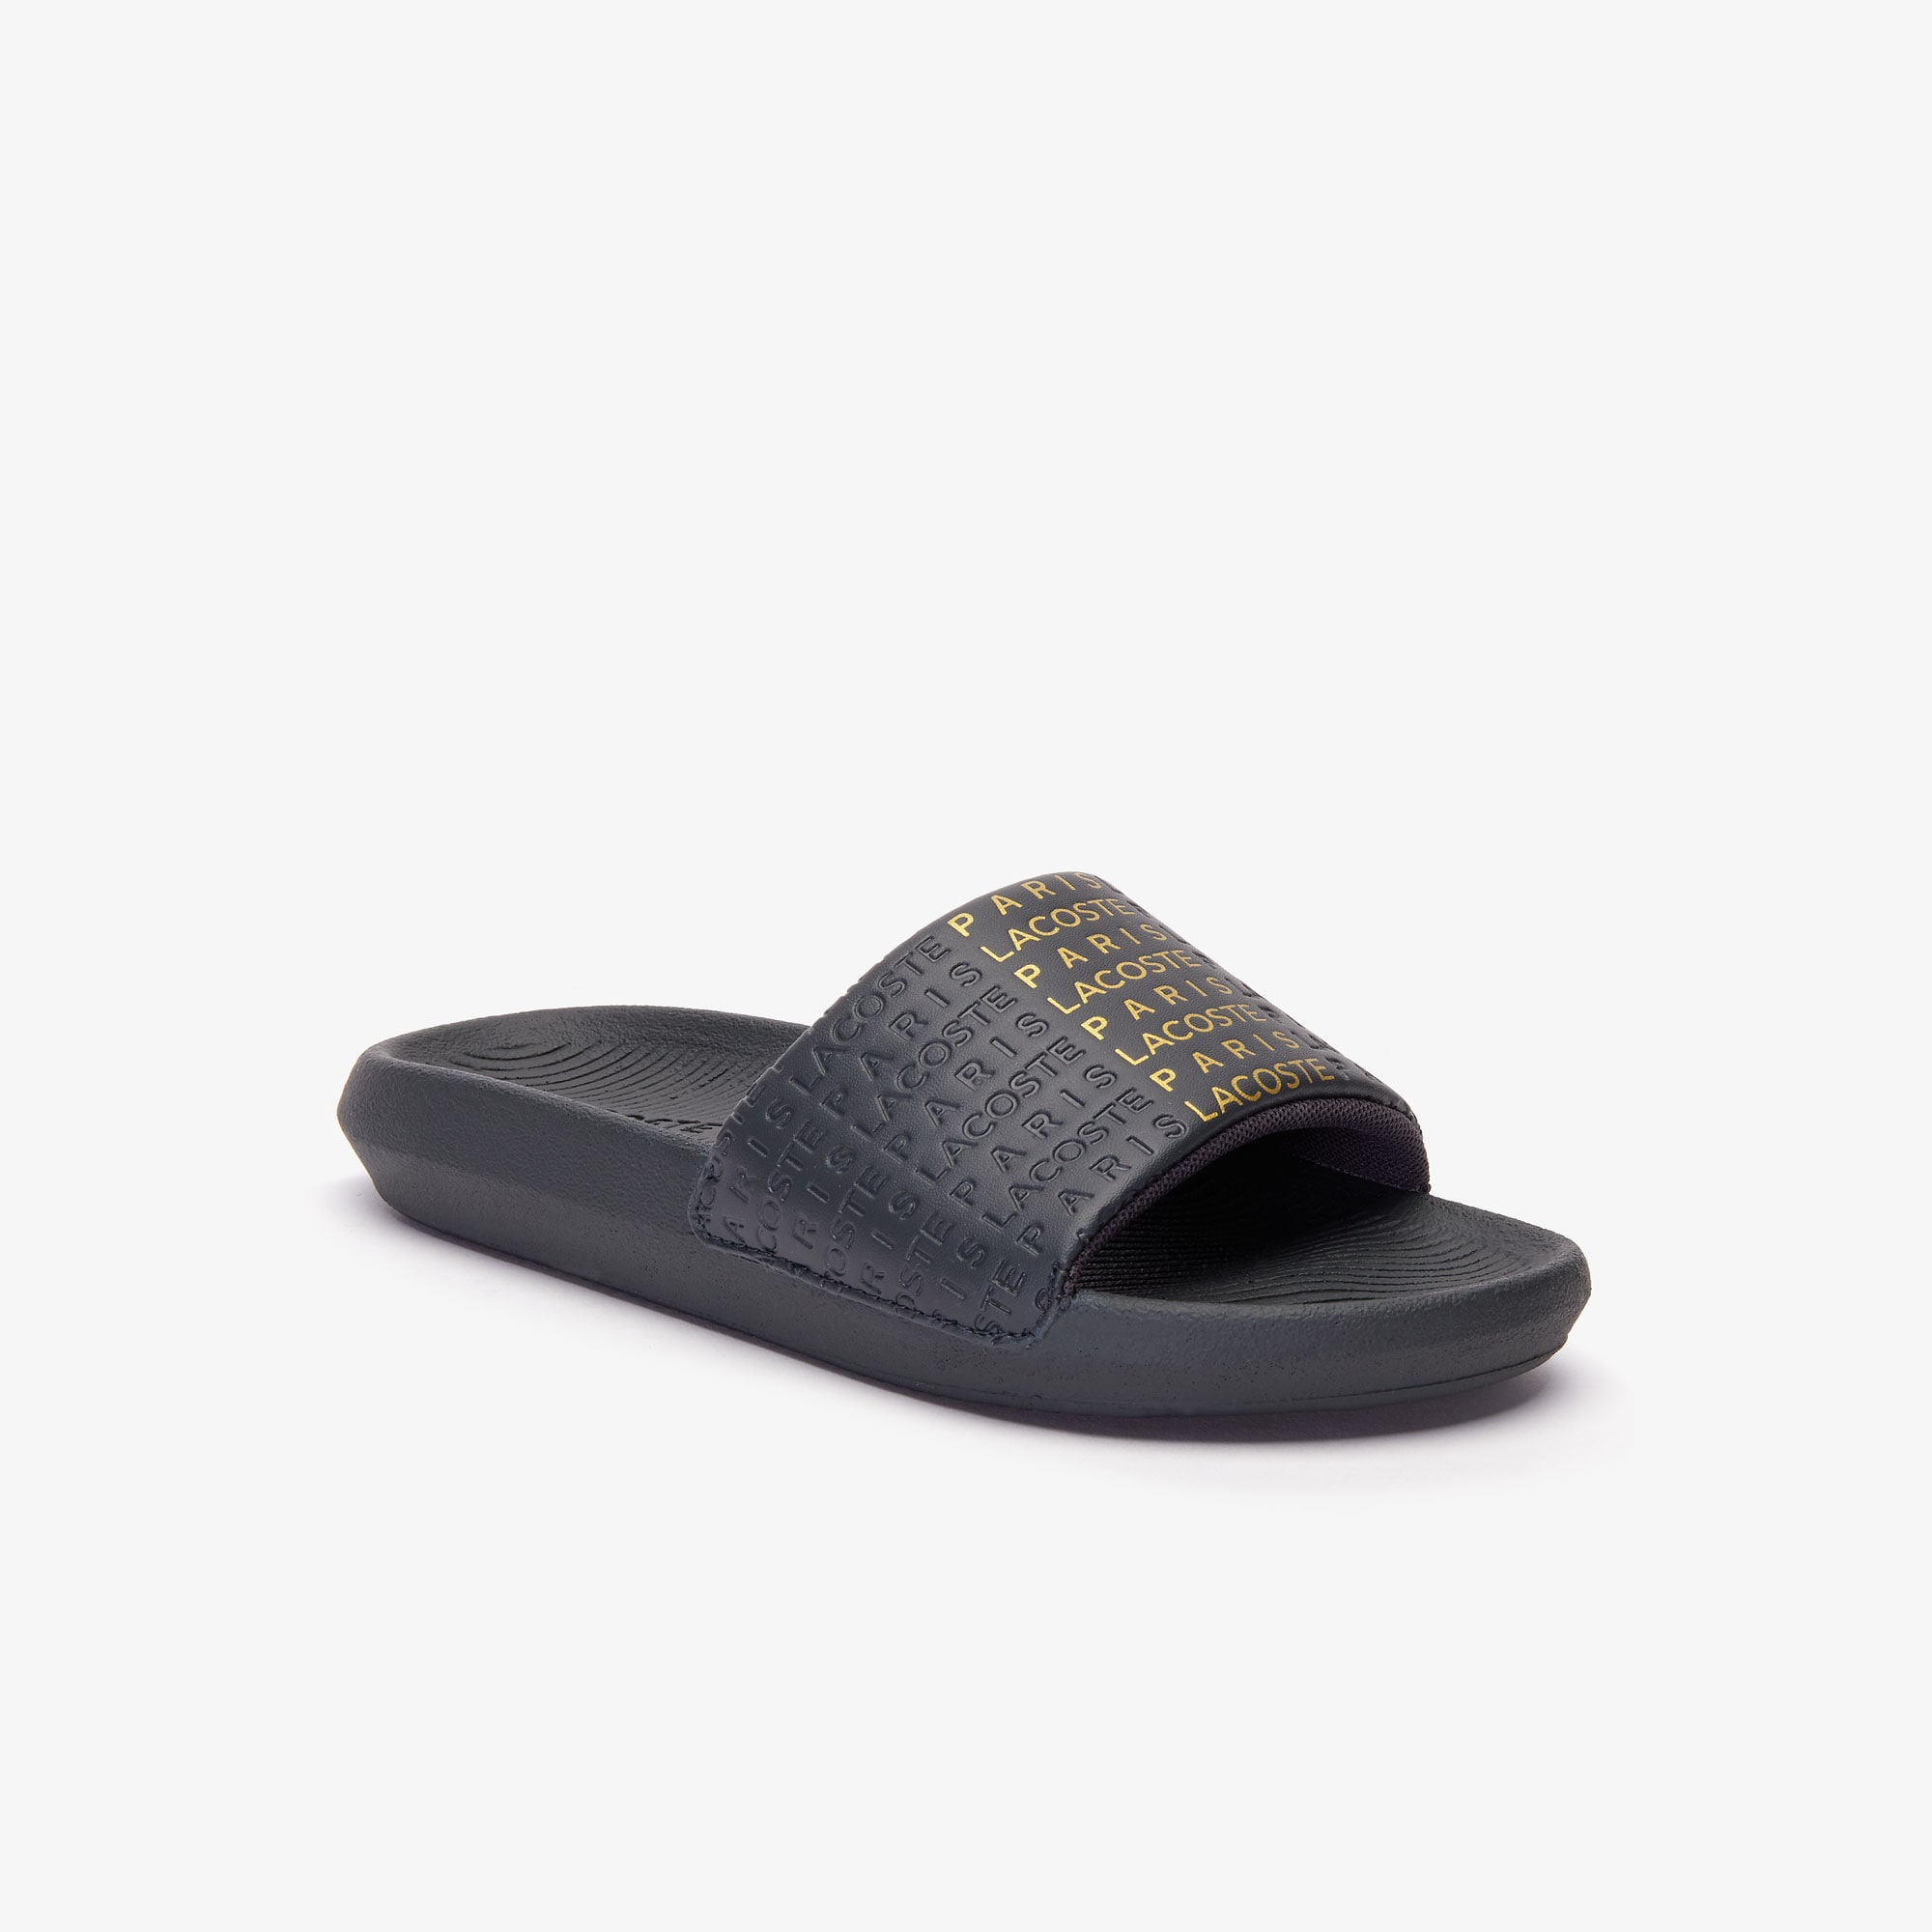 056a945a83cce Shoes for Women | Footwear | LACOSTE